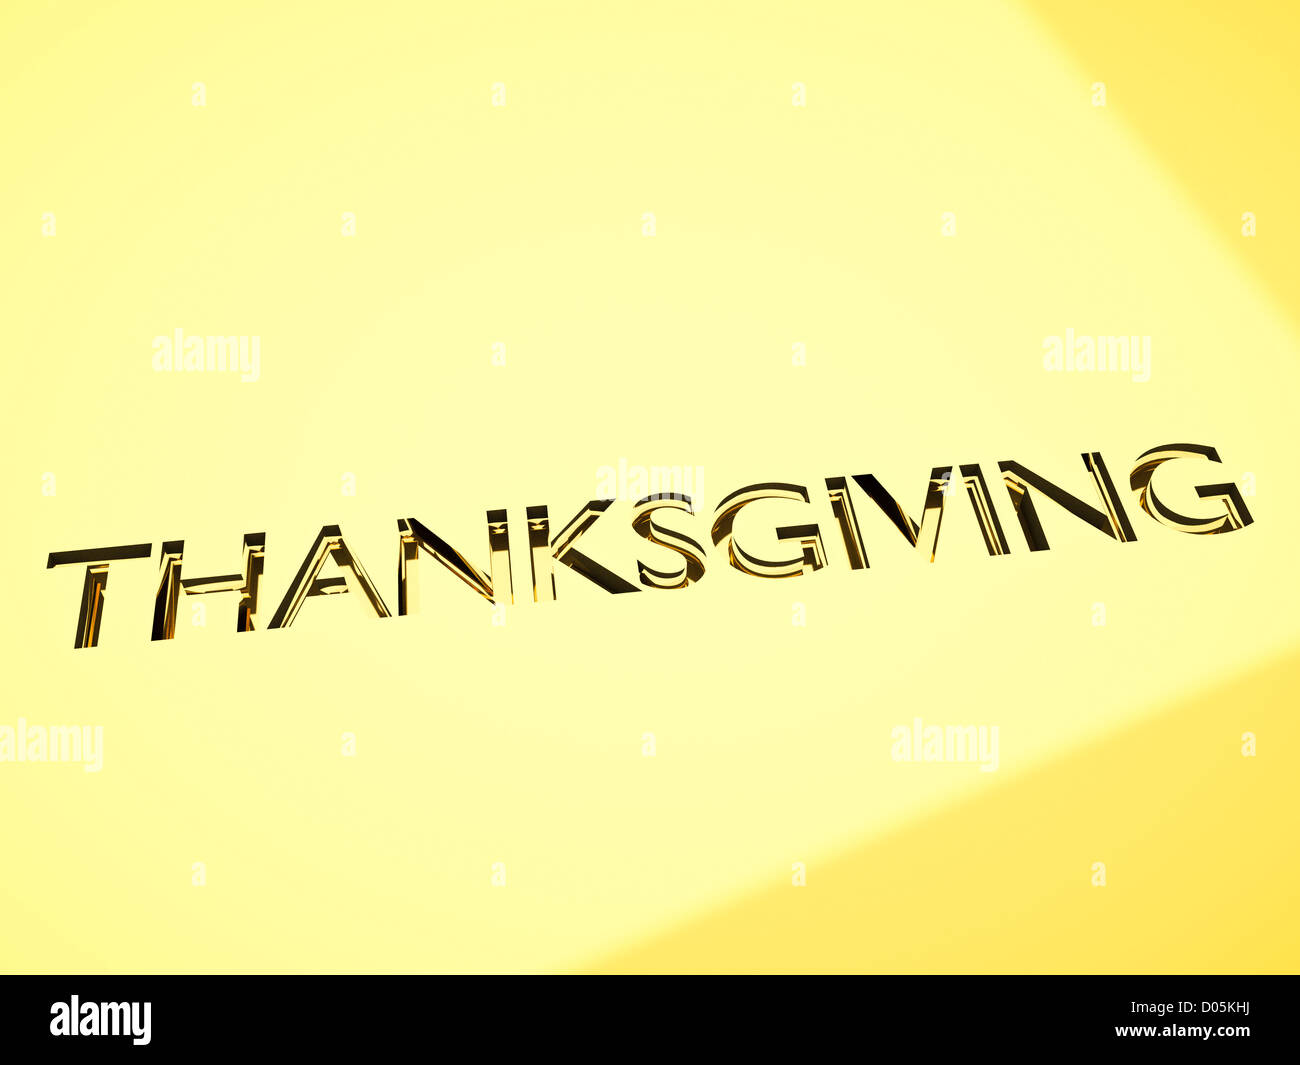 Thanksgiving Message In Engraving Celebrations Stock Photos